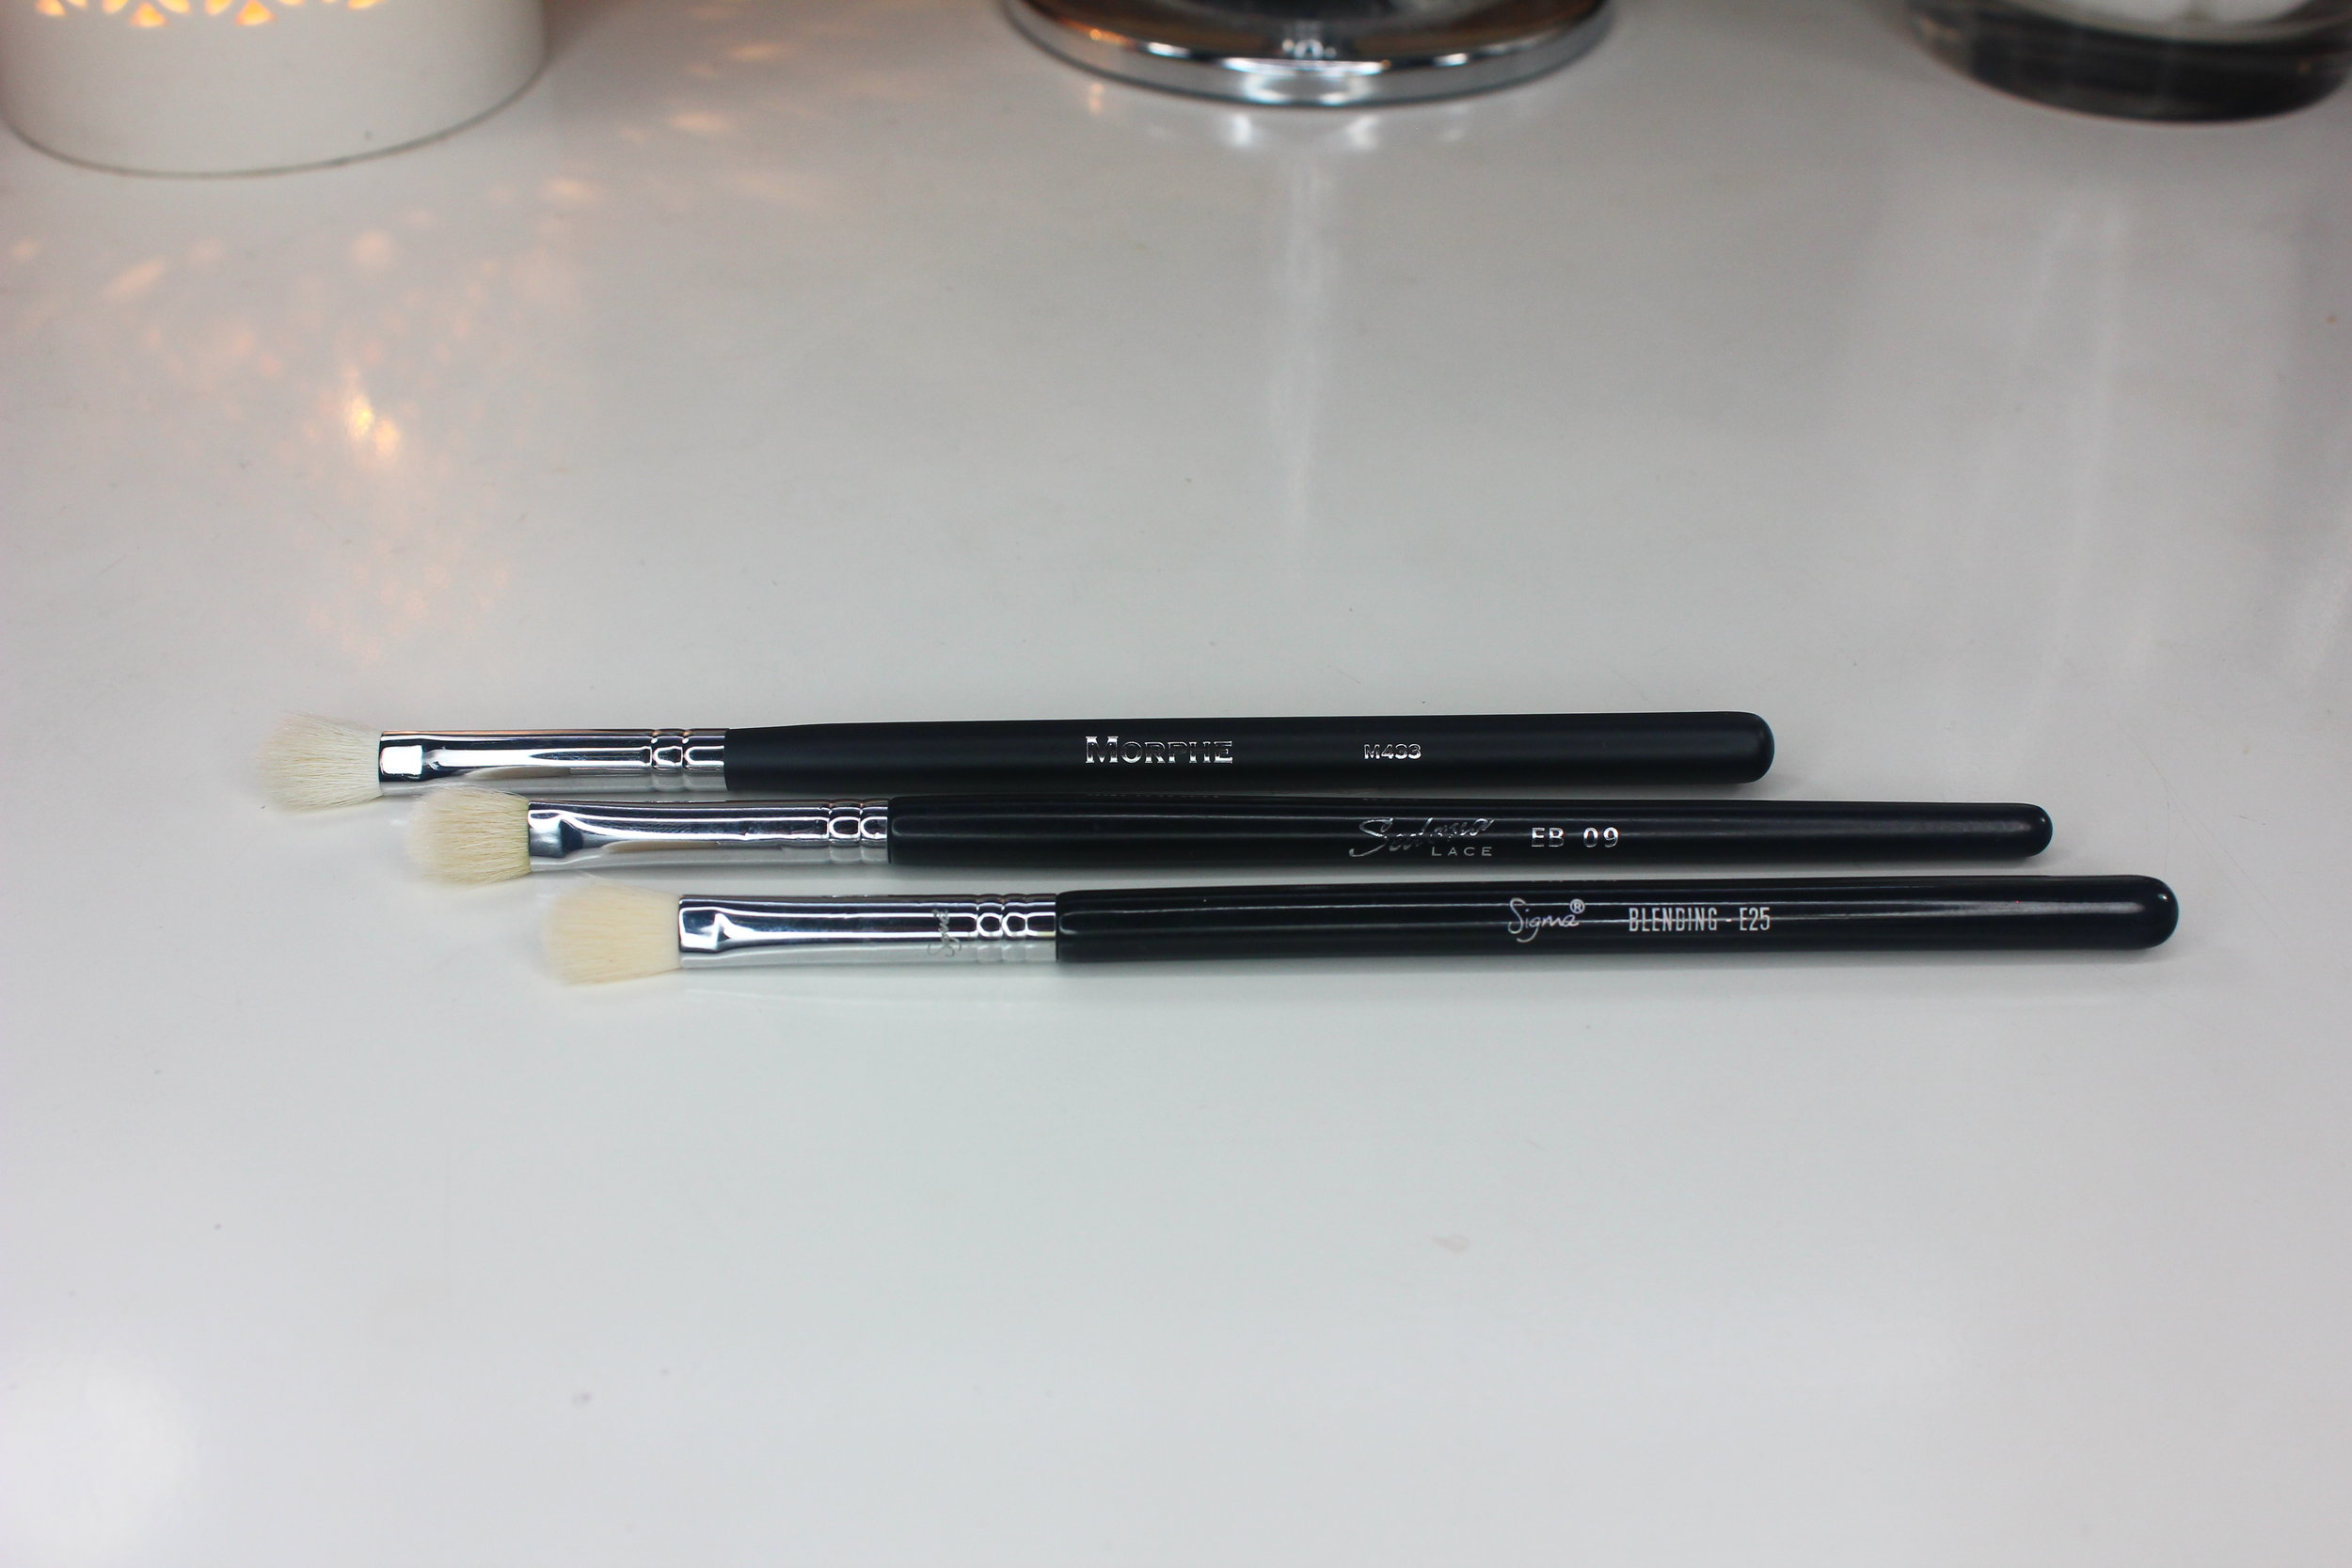 Morphe Brushes 3 - M433 Pro Firm Blending Fluff